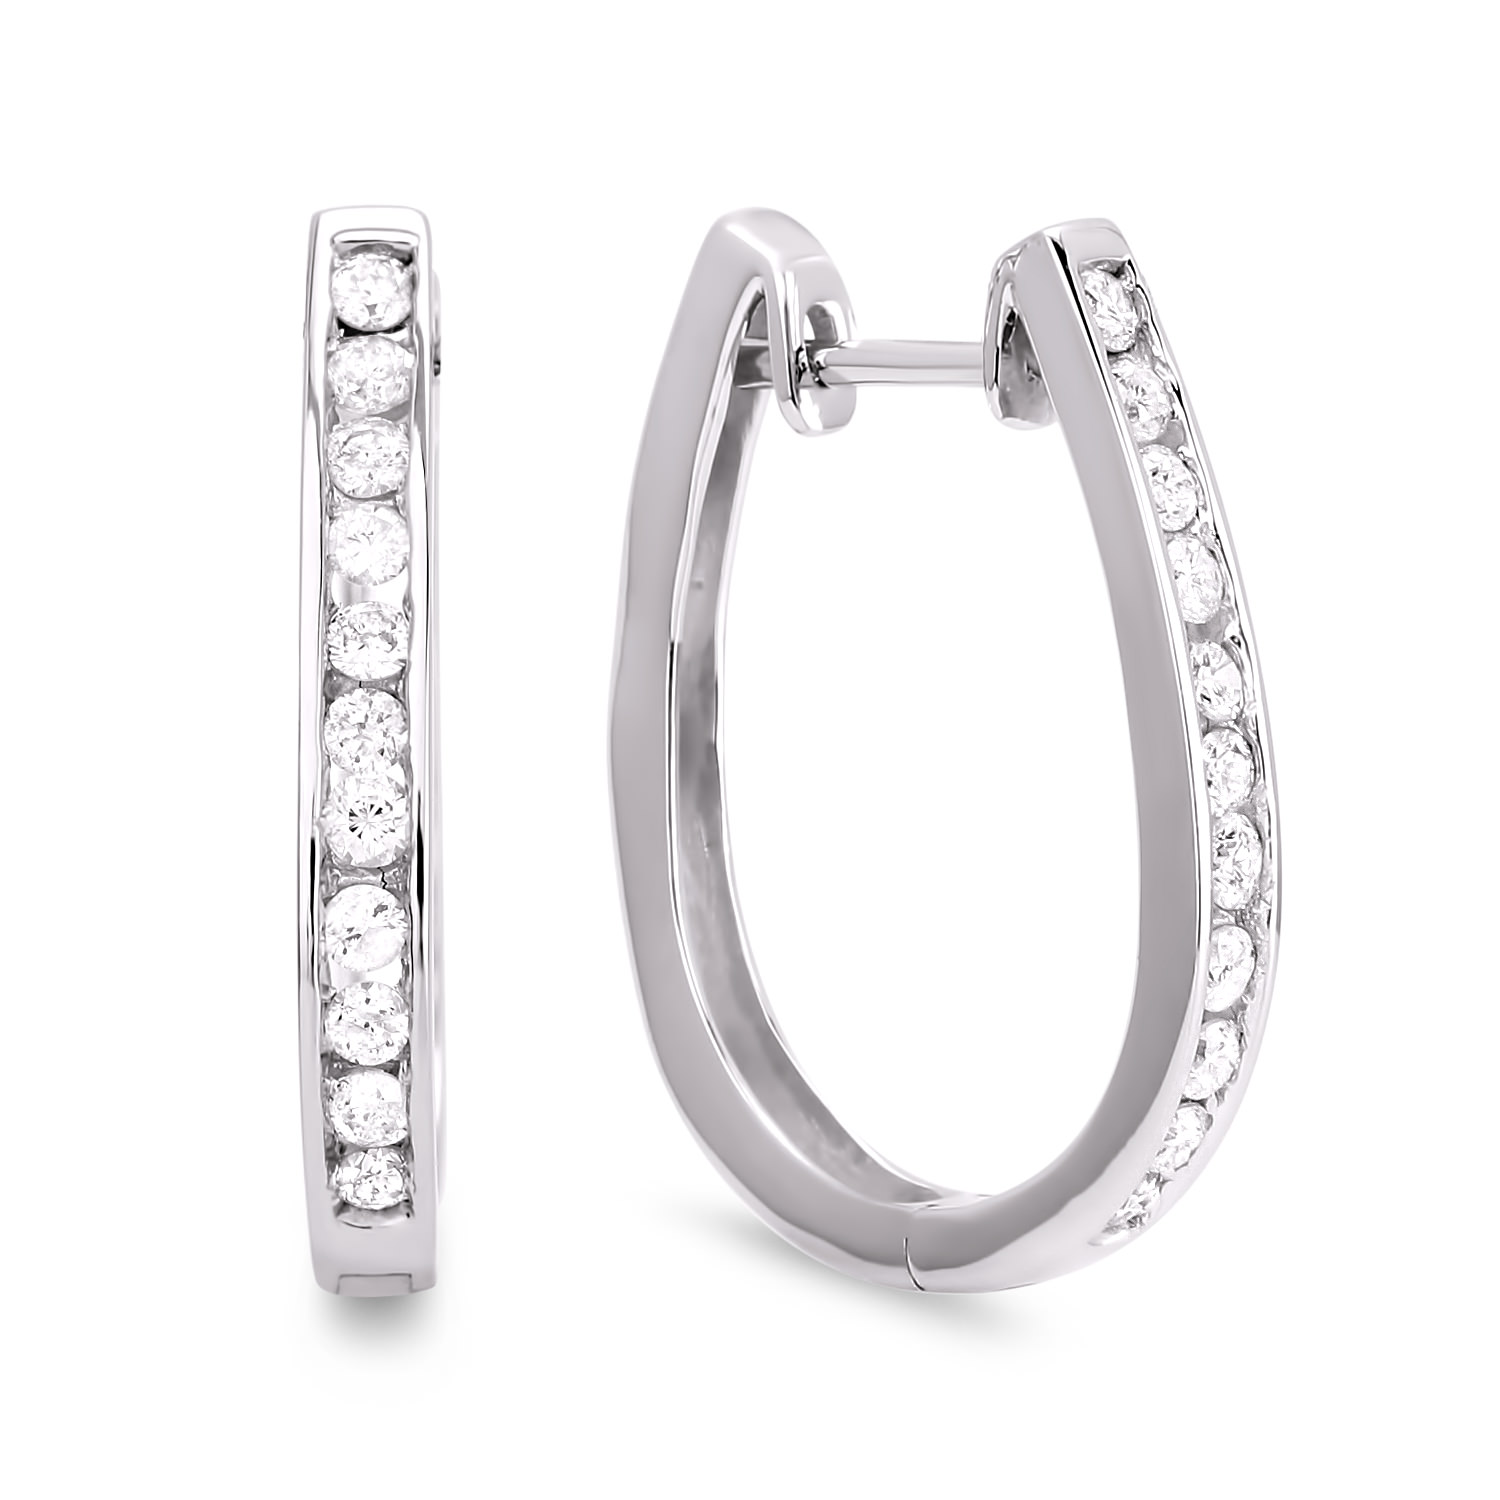 Diamond Hoop Earrings SGE128 (Earrings)